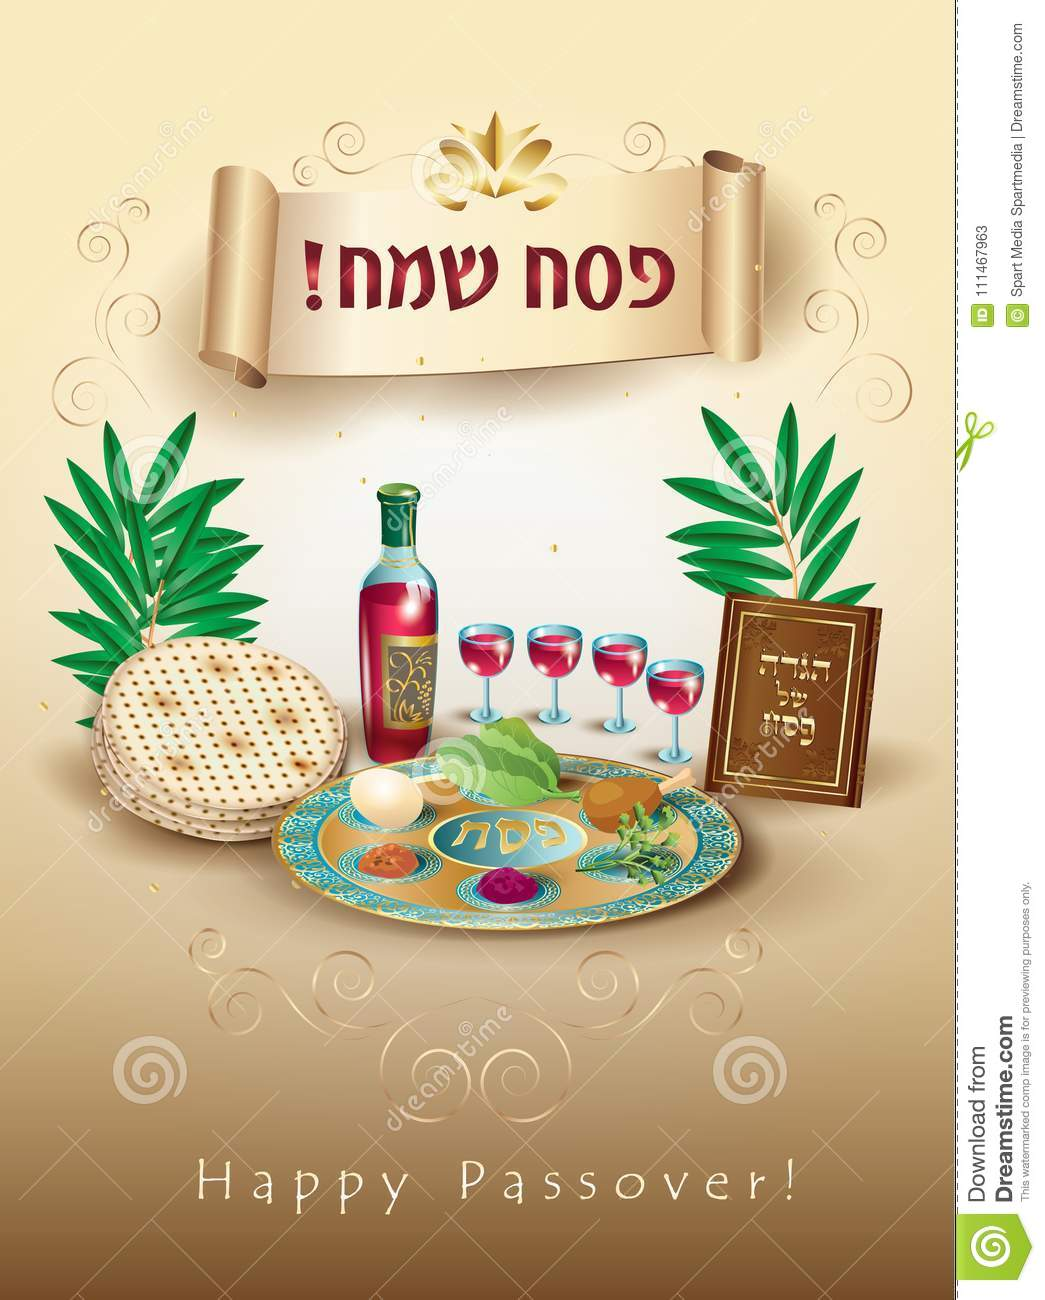 Passover jewish holiday pesach seder stock illustration passover jewish holiday pesach seder m4hsunfo